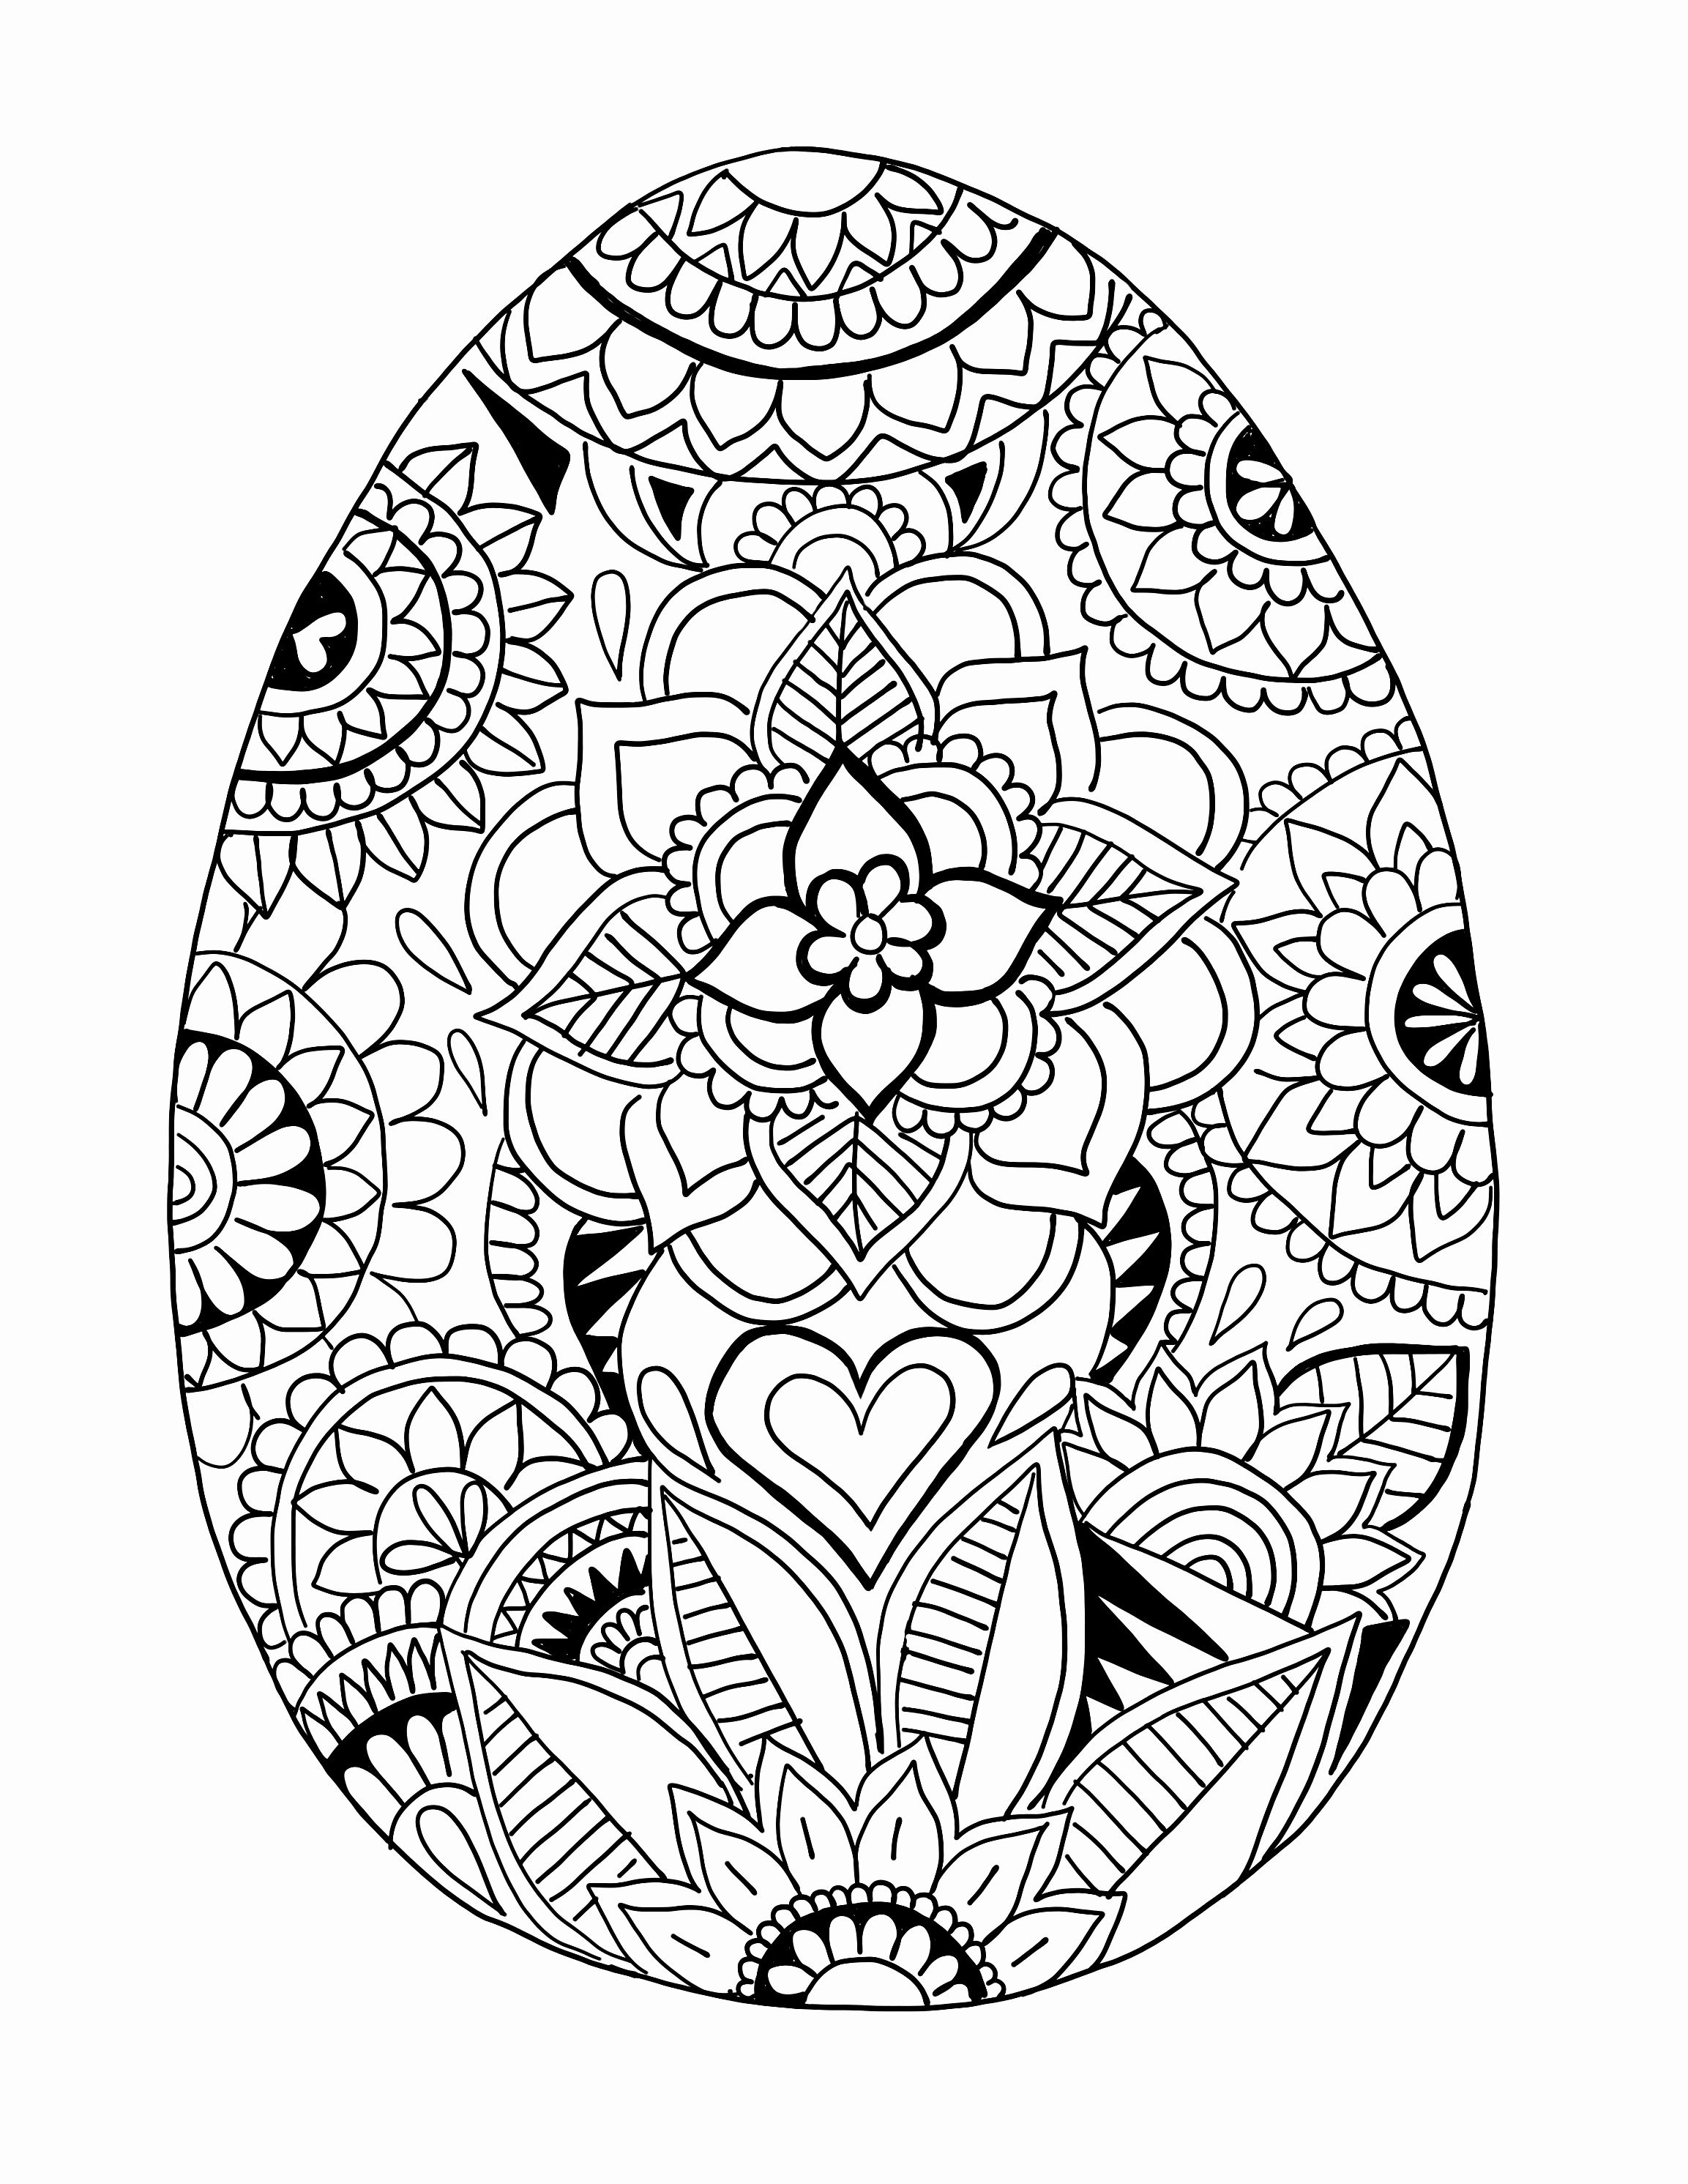 Coloring Book Easter Egg Easter Coloring Pictures Coloring Eggs Easter Egg Printable